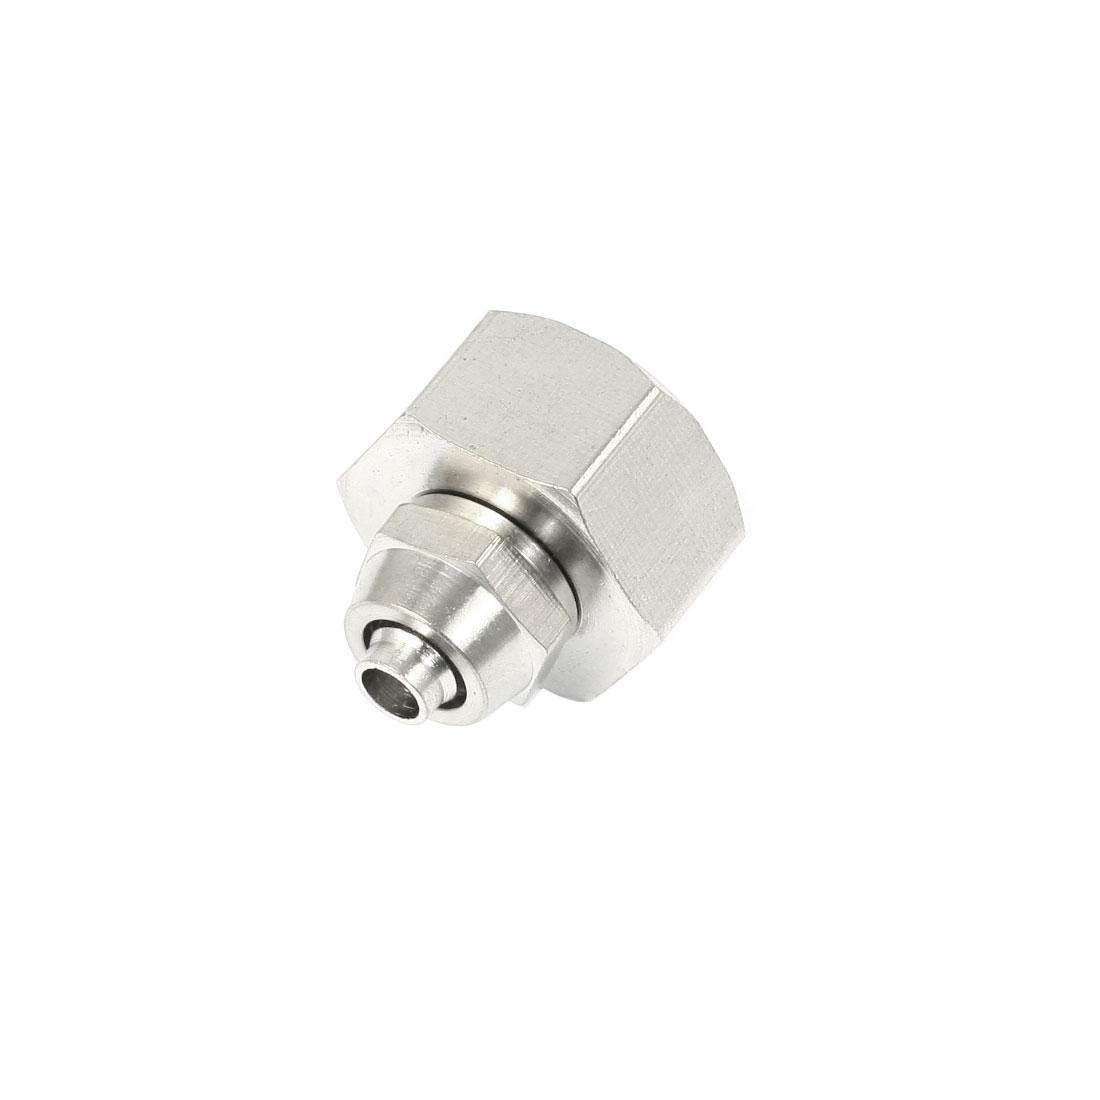 1/2PT Female Threaded Straight Quick Coupling Coupler Connector Silver Tone for 5mm Dia Air Pneumatic Hose